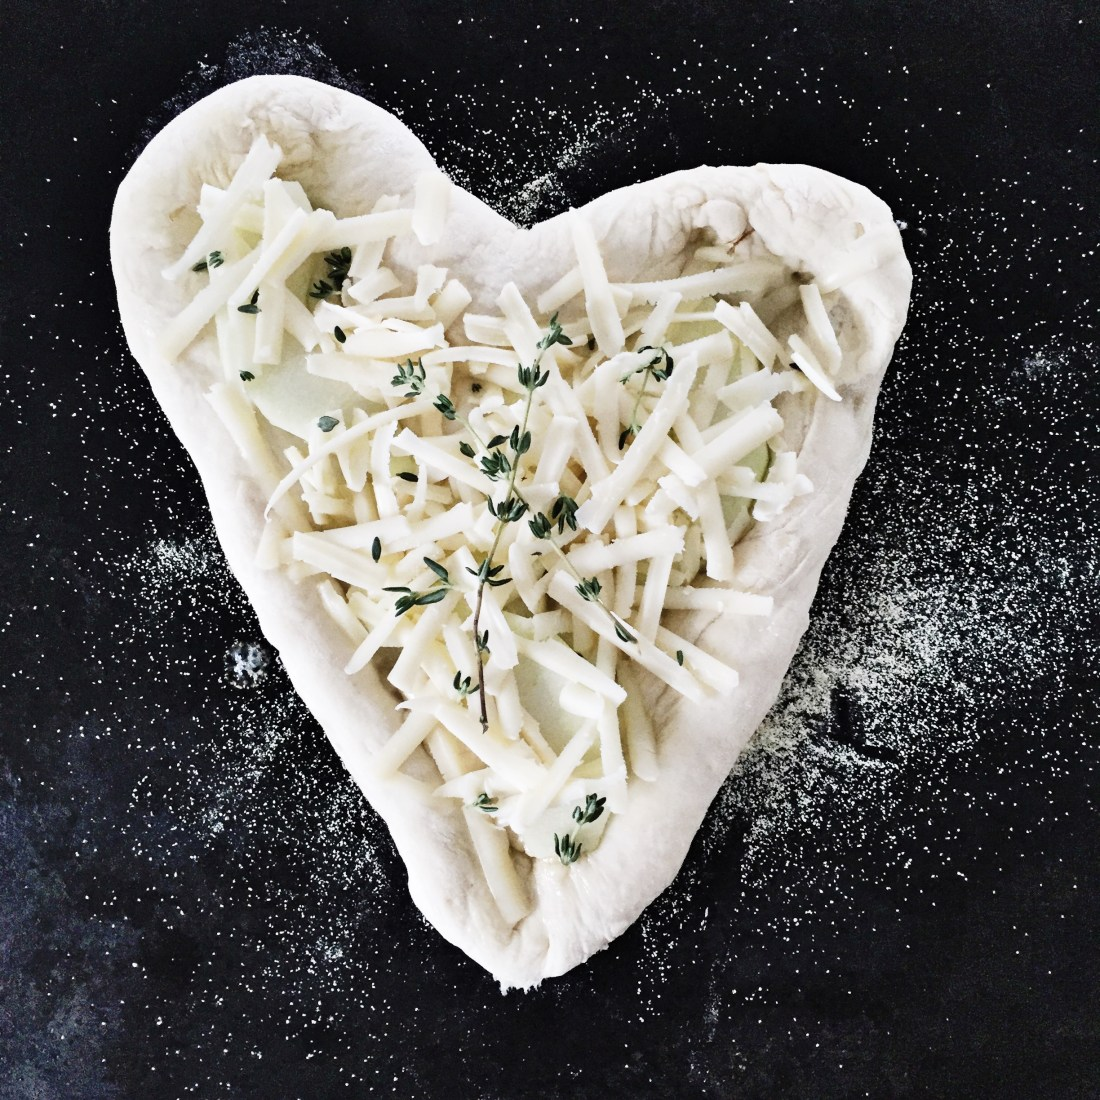 Apple, Cheddar & Thyme Heart-Shaped Pizza preparation